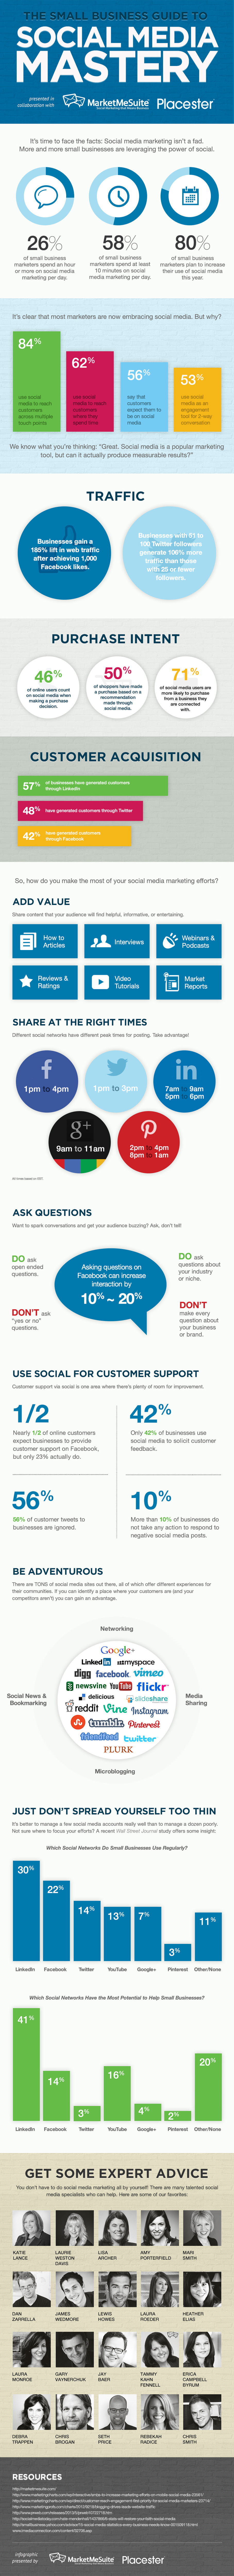 infographic: Social Media Mastery Guide for Small Businesses